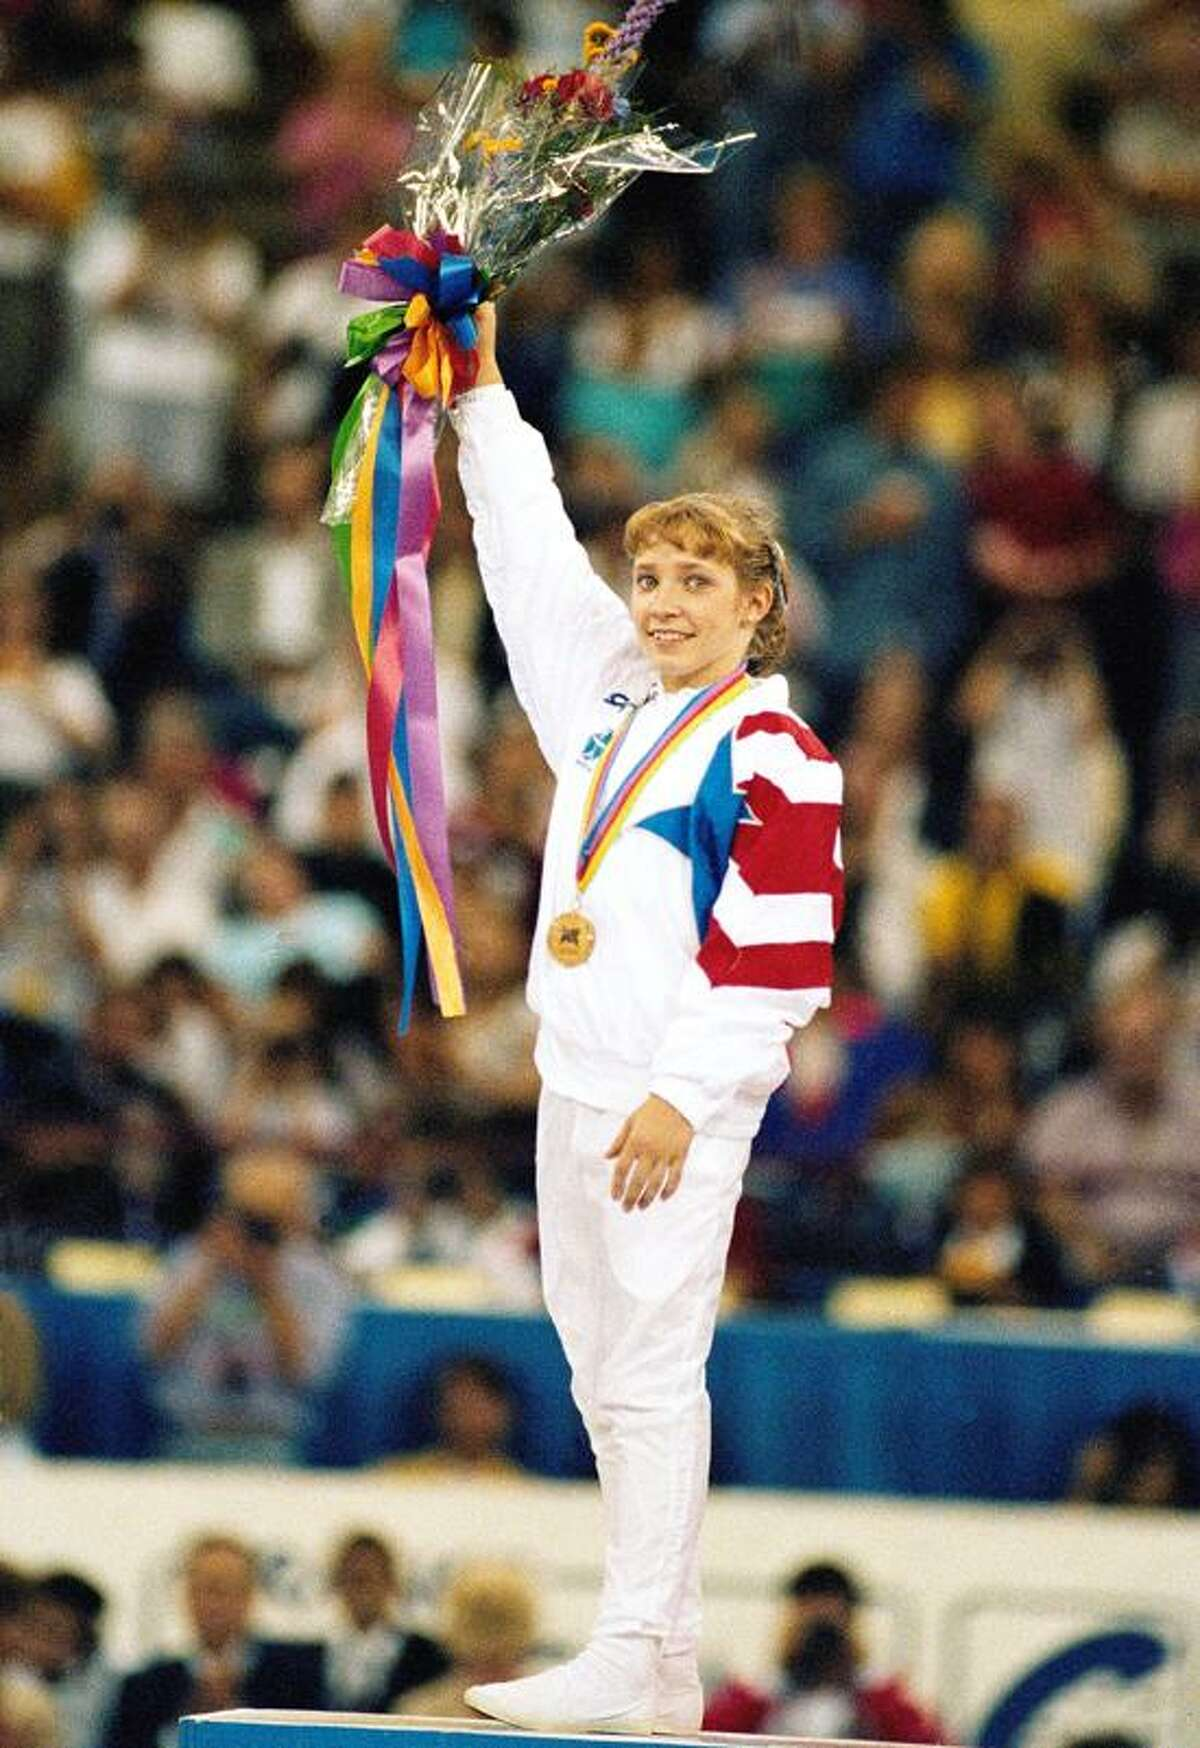 FILE - United State's Kim Zmeskal holds up flowers during the medal ceremony after winning the gold medal in the women's all around at the World Gymnastics competition in Indianapolis. Zmeskal's 1991 world title set the stage for the